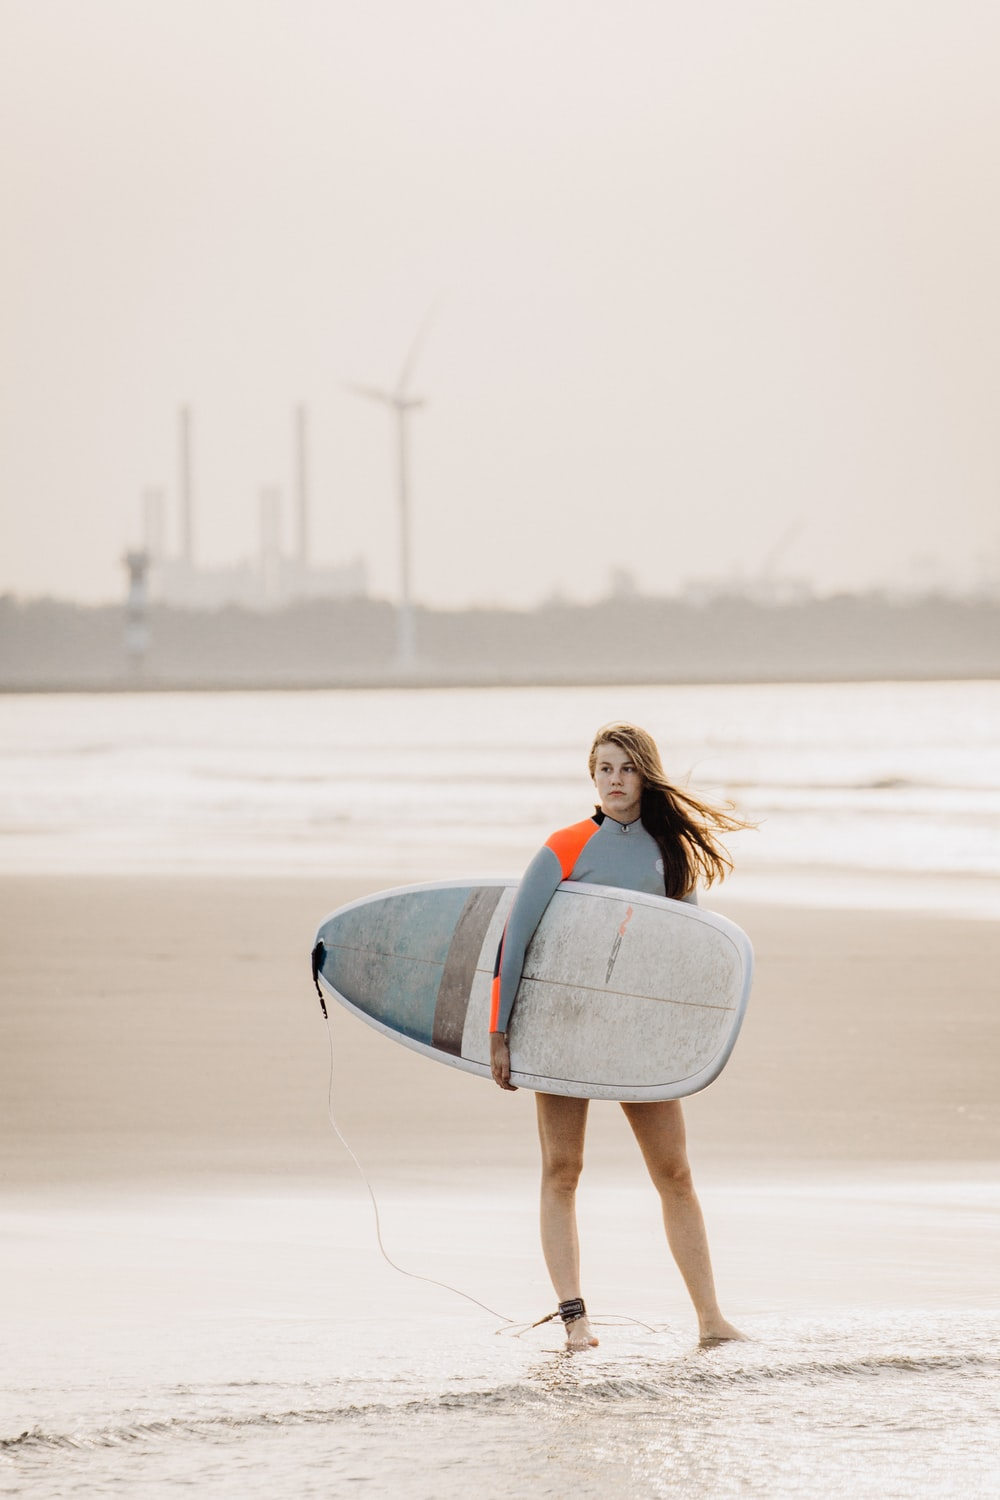 woman standing on seashore carrying surfboard